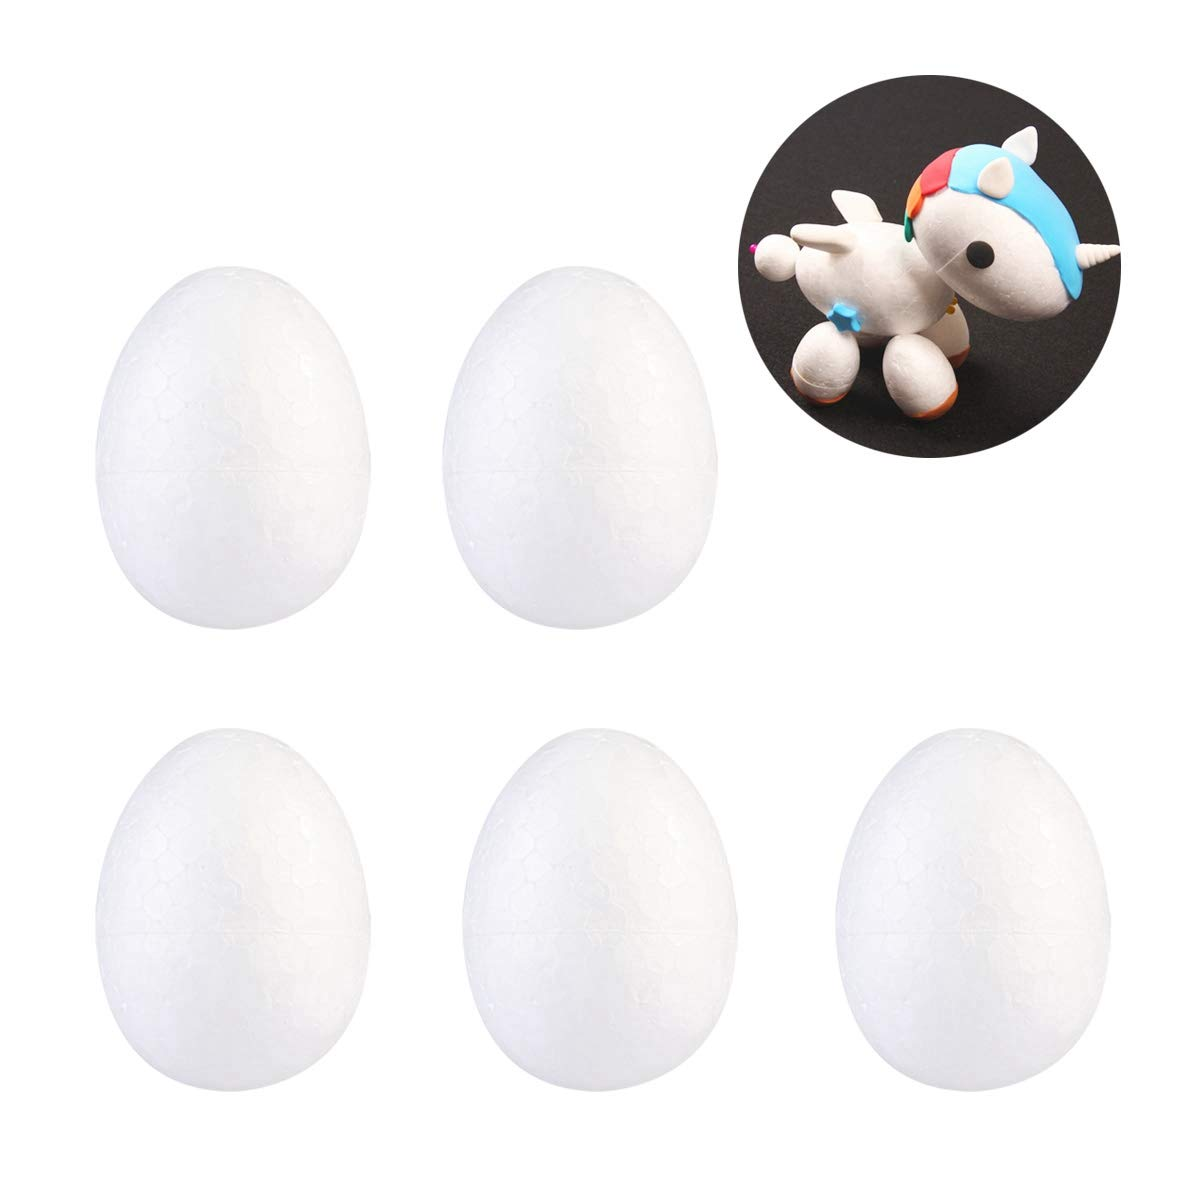 Amosfun Painting Foam Egg DIY Easter Styrofoam Decor for Kid Festival Crafts Easter Gift EASTER Party Decoration 20pcs 6cm